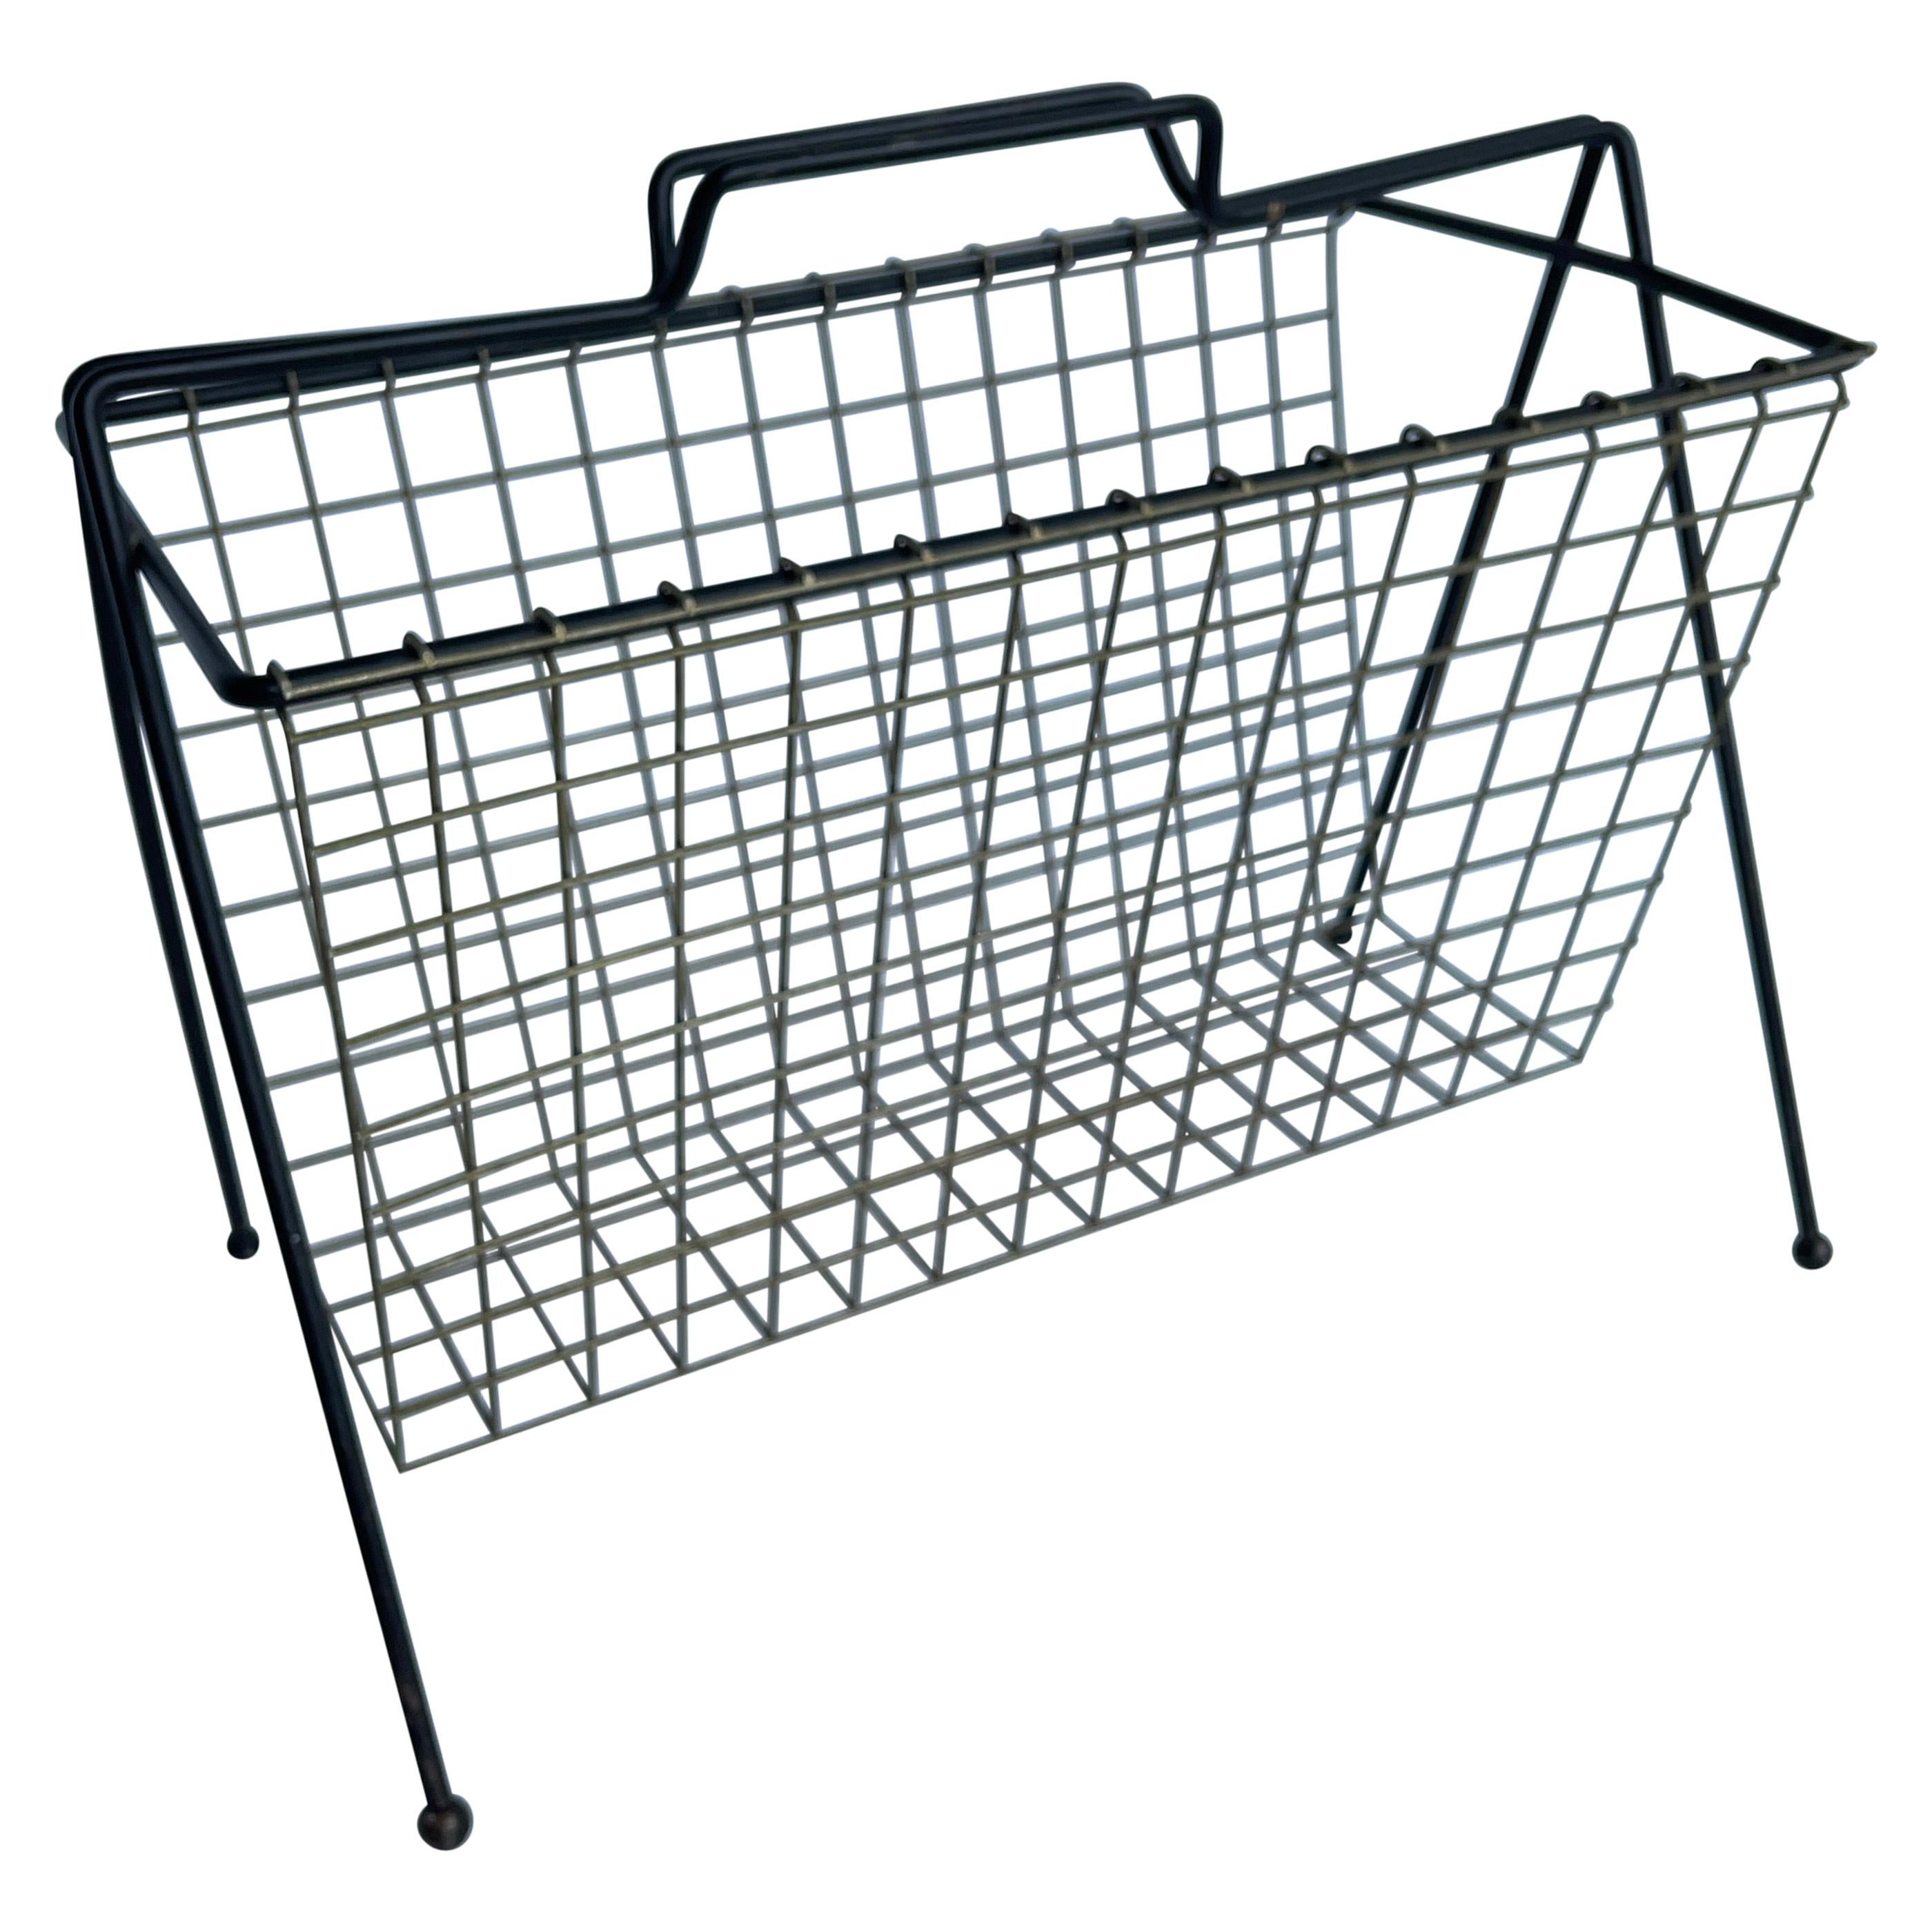 Mid-Century Modern Tony Paul Metal and Wire Magazine Rack with Ball Feet